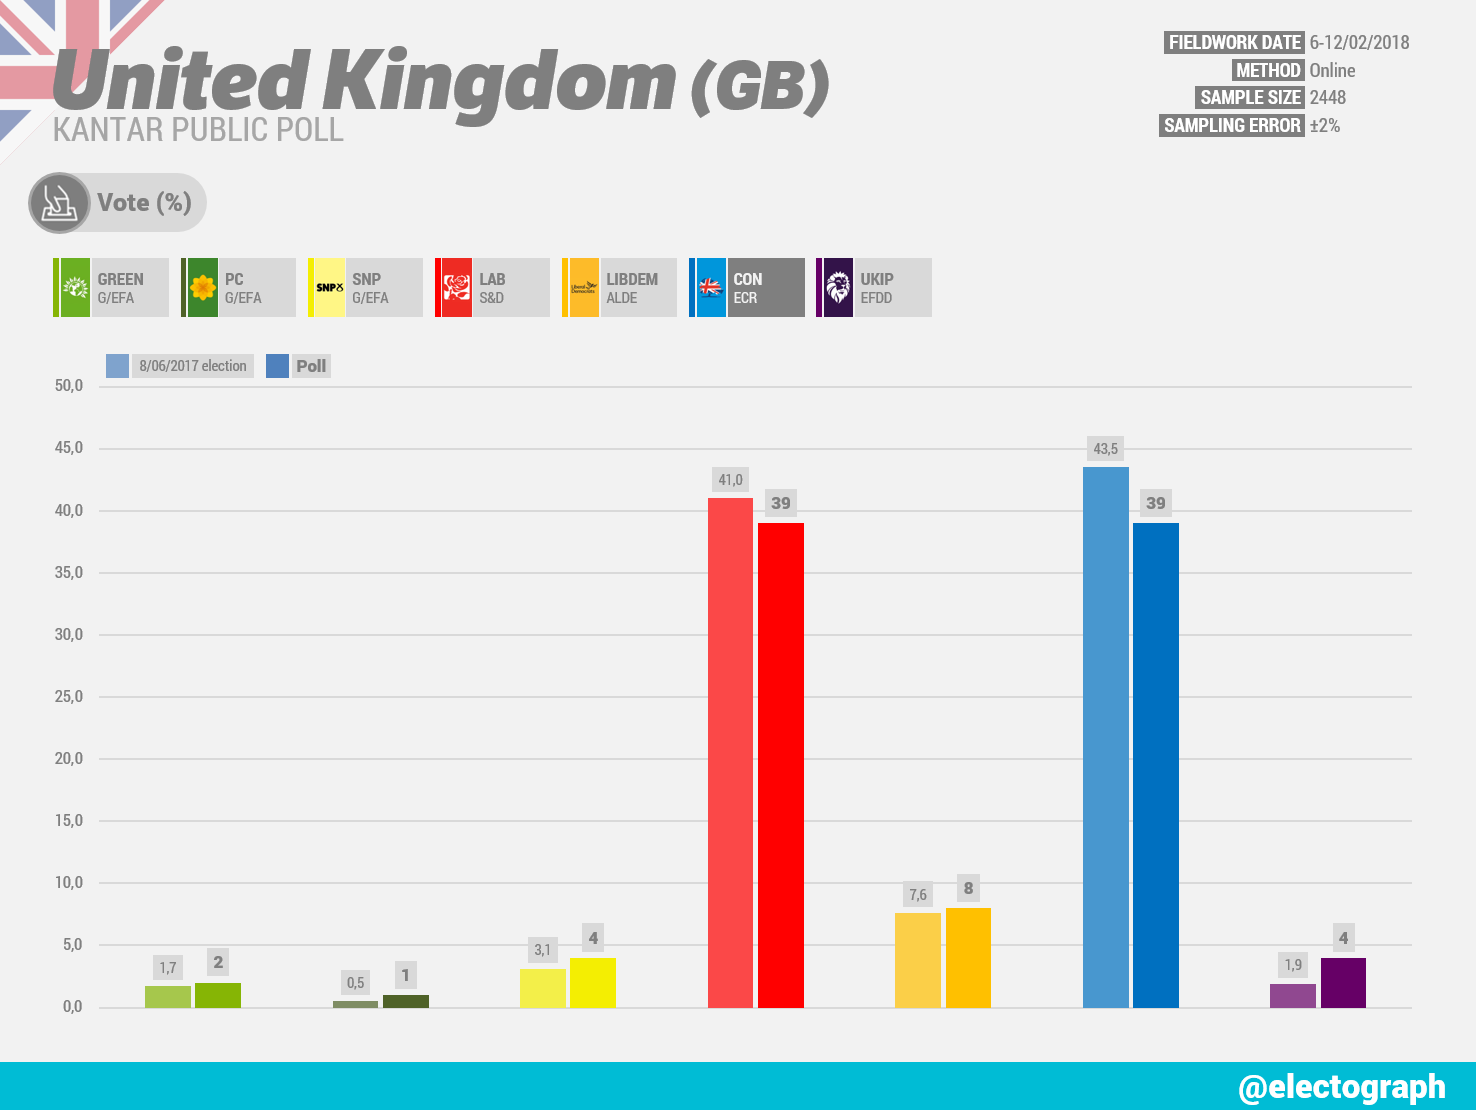 UNITED KINGDOM Kantar Public poll chart, February 2018